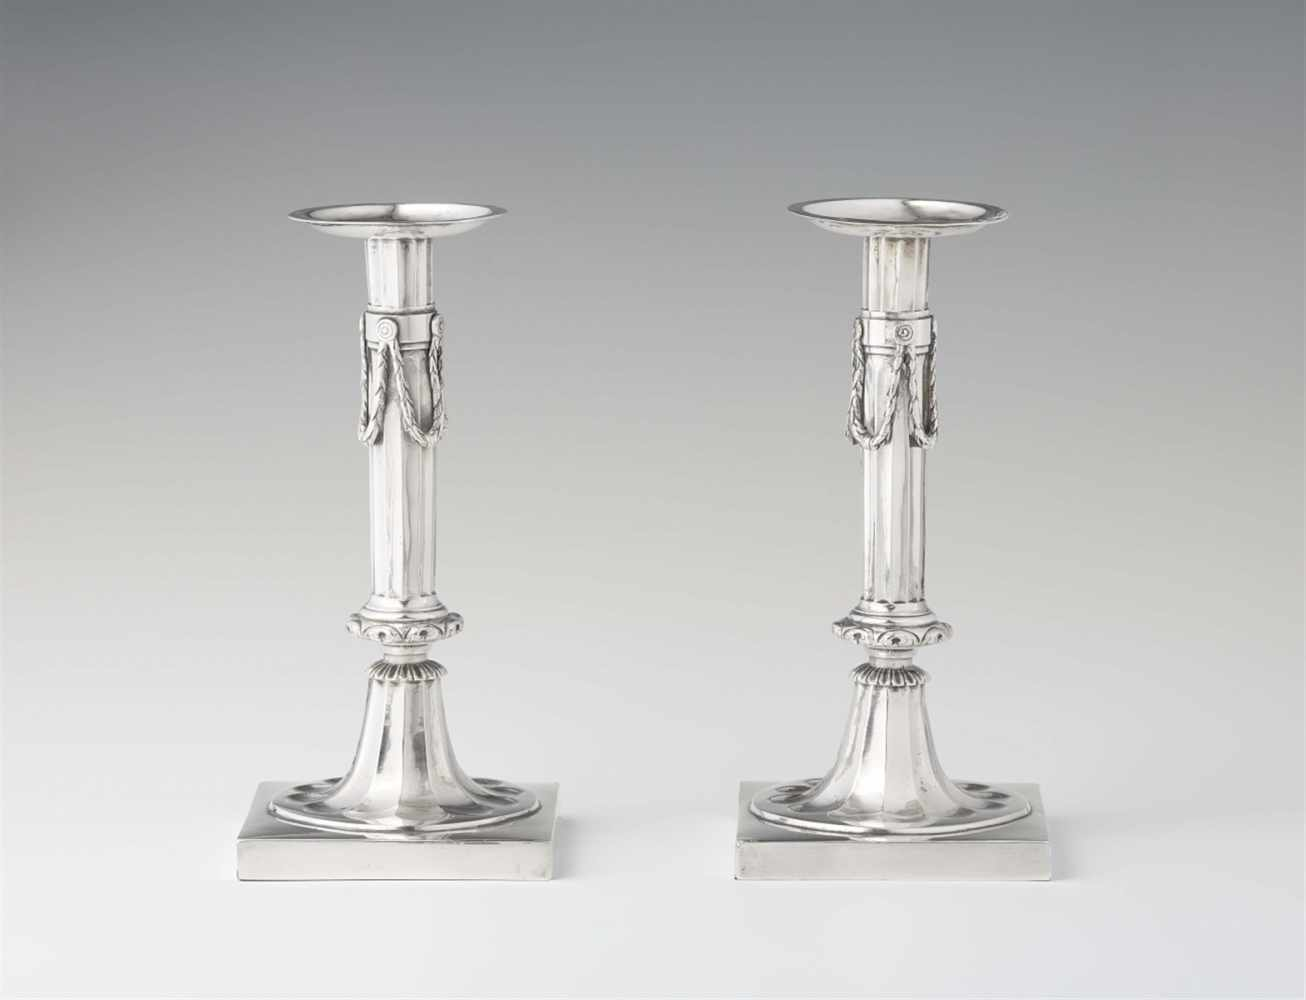 Lot 353 - A pair of Cologne silver candlesticksFluted columns with festoons on square bases. H 22.5 cm, weight